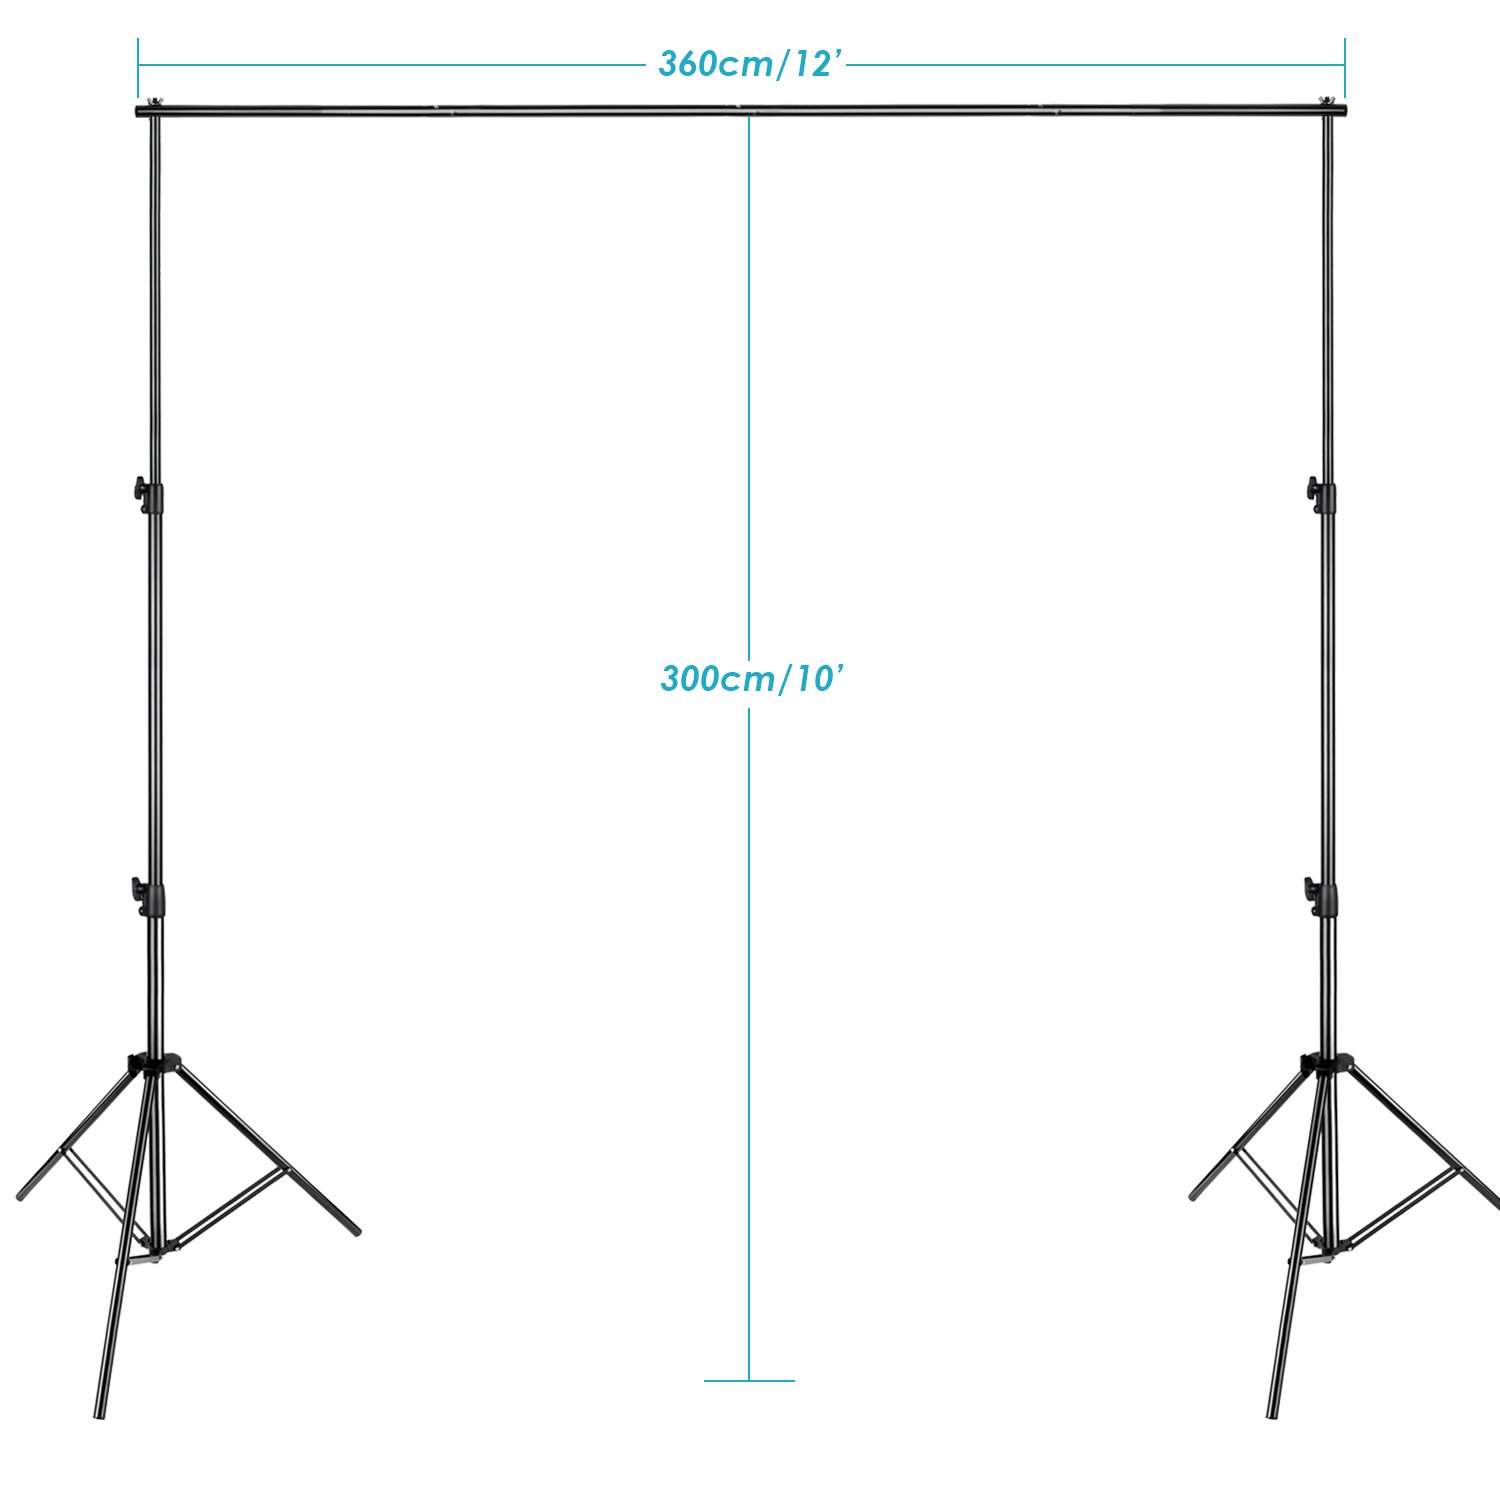 Neewer Pro 10x12 feet/3x3.6 Meters Heavy Duty Adjustable Backdrop Support System Photography Studio Video Stand with Carrying Bag for Backdrop Background by Neewer (Image #3)